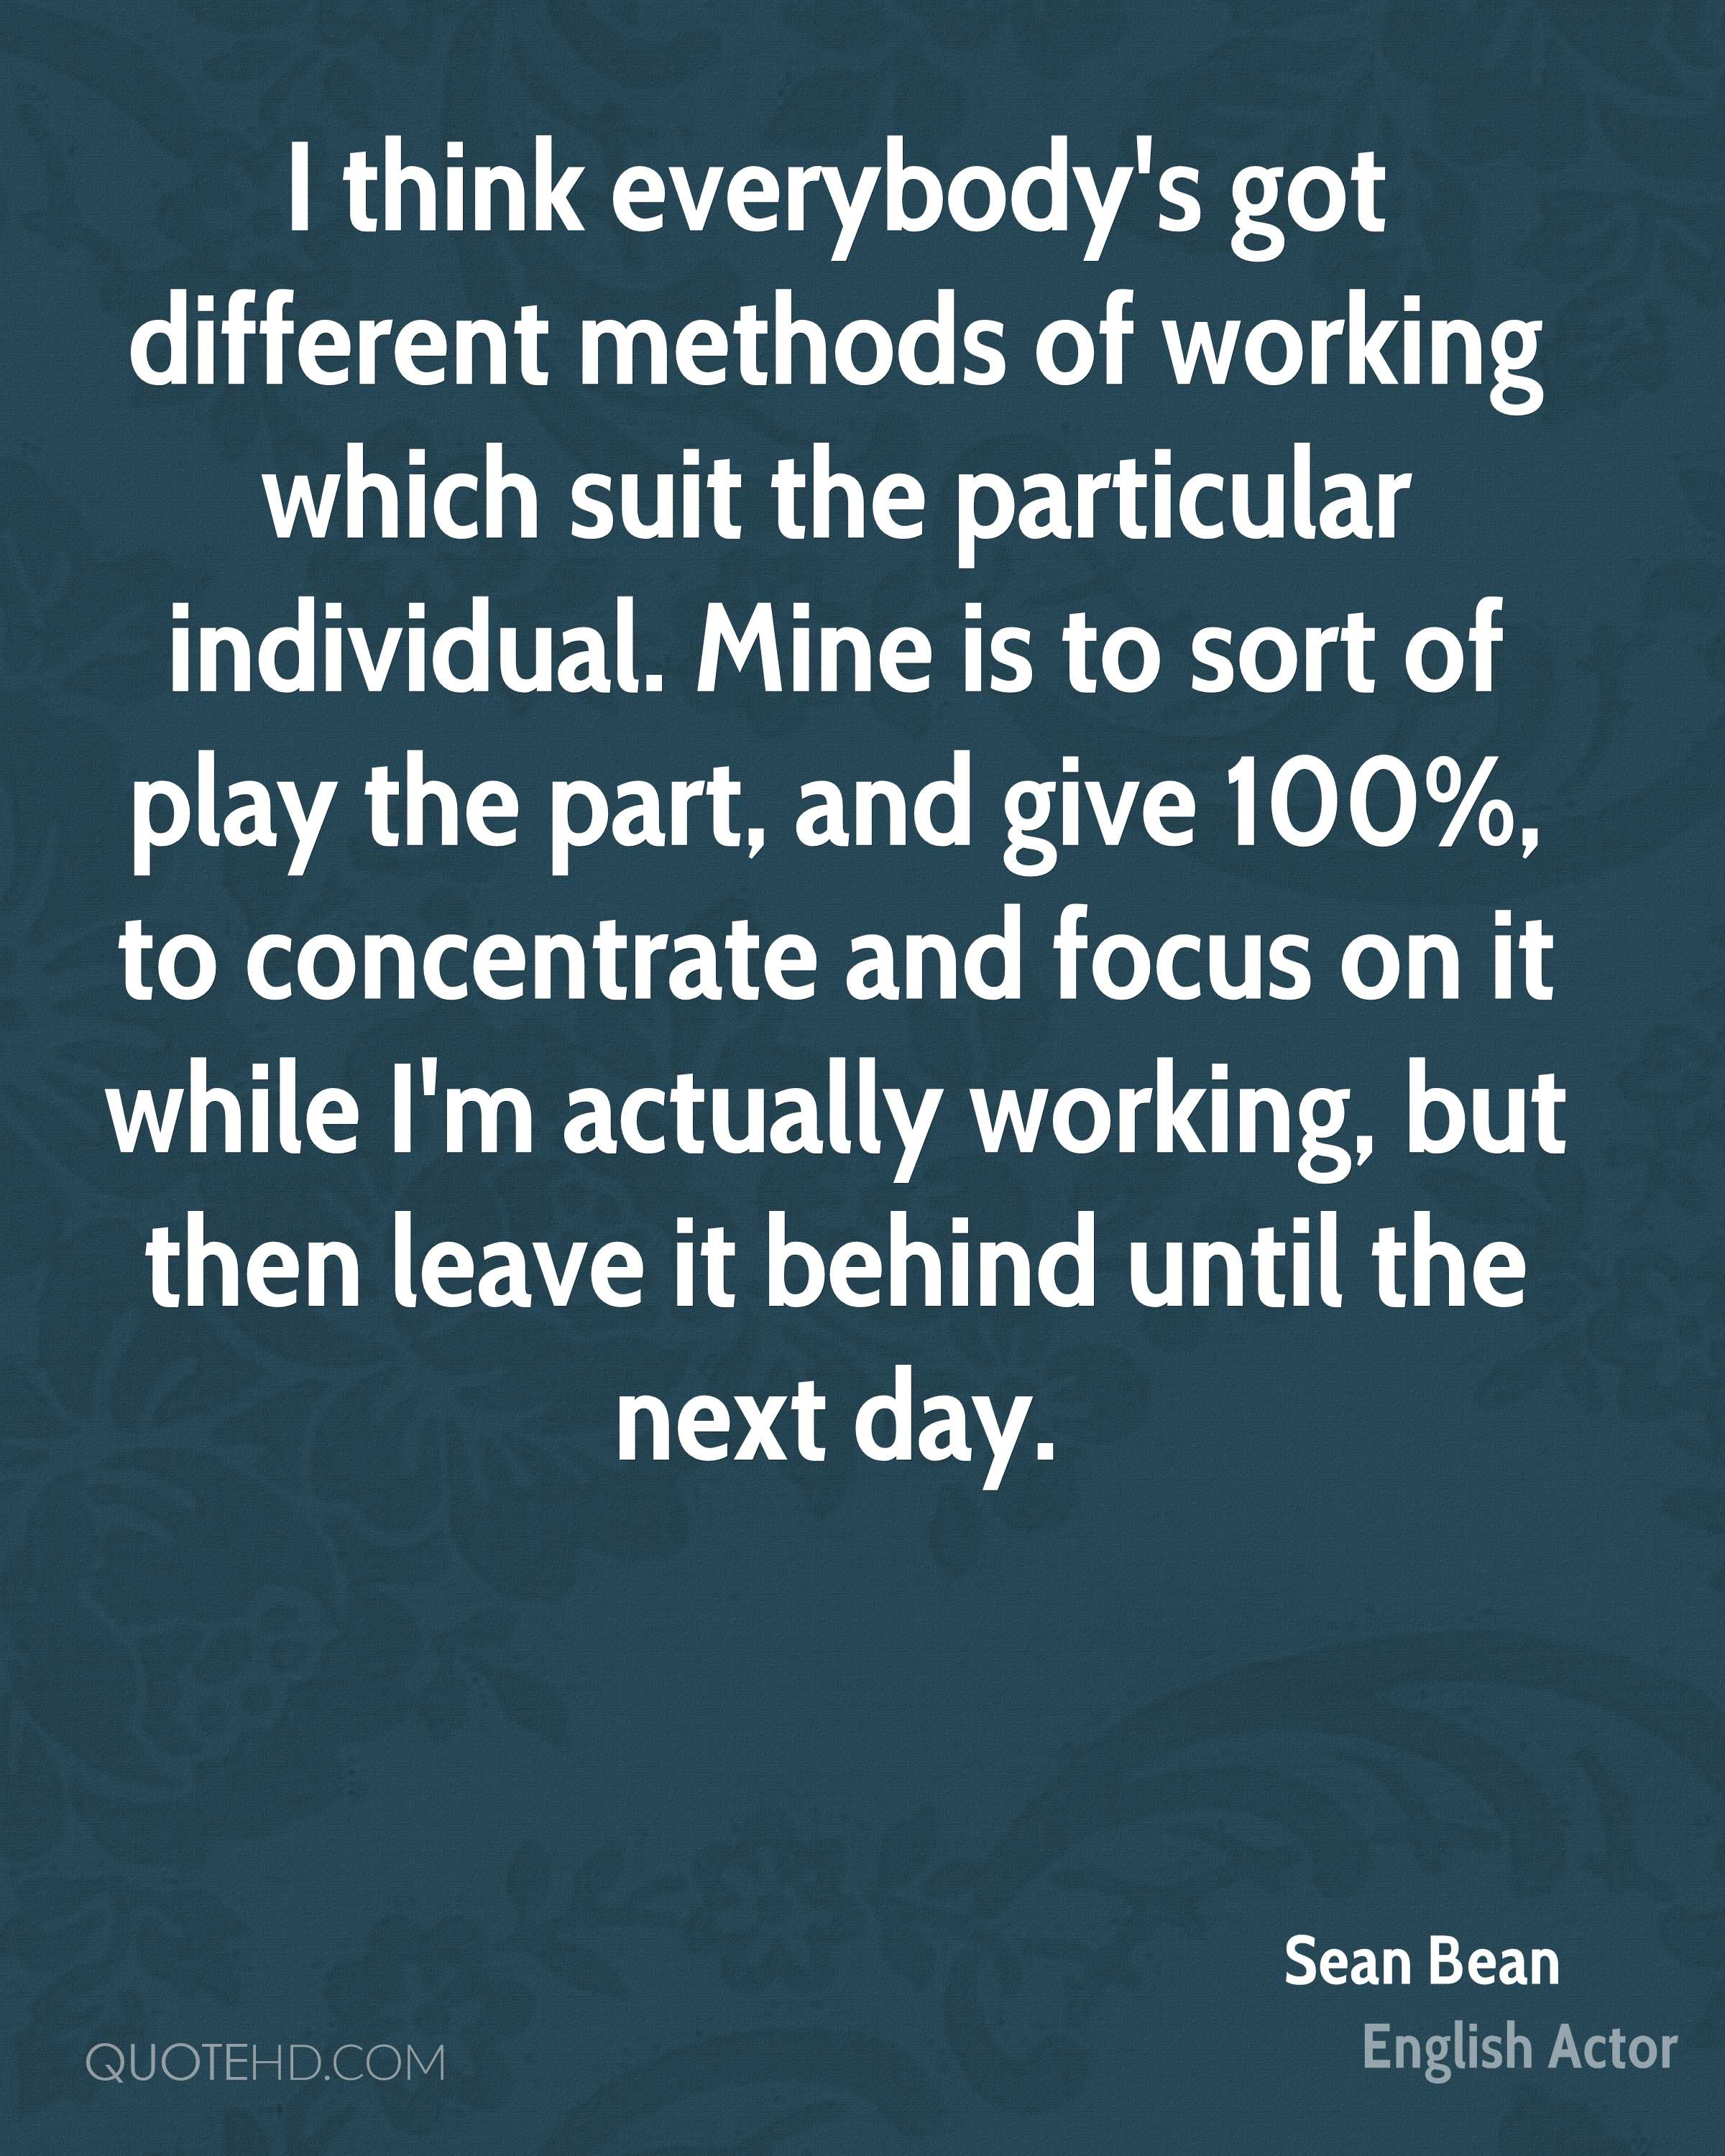 I think everybody's got different methods of working which suit the particular individual. Mine is to sort of play the part, and give 100%, to concentrate and focus on it while I'm actually working, but then leave it behind until the next day.